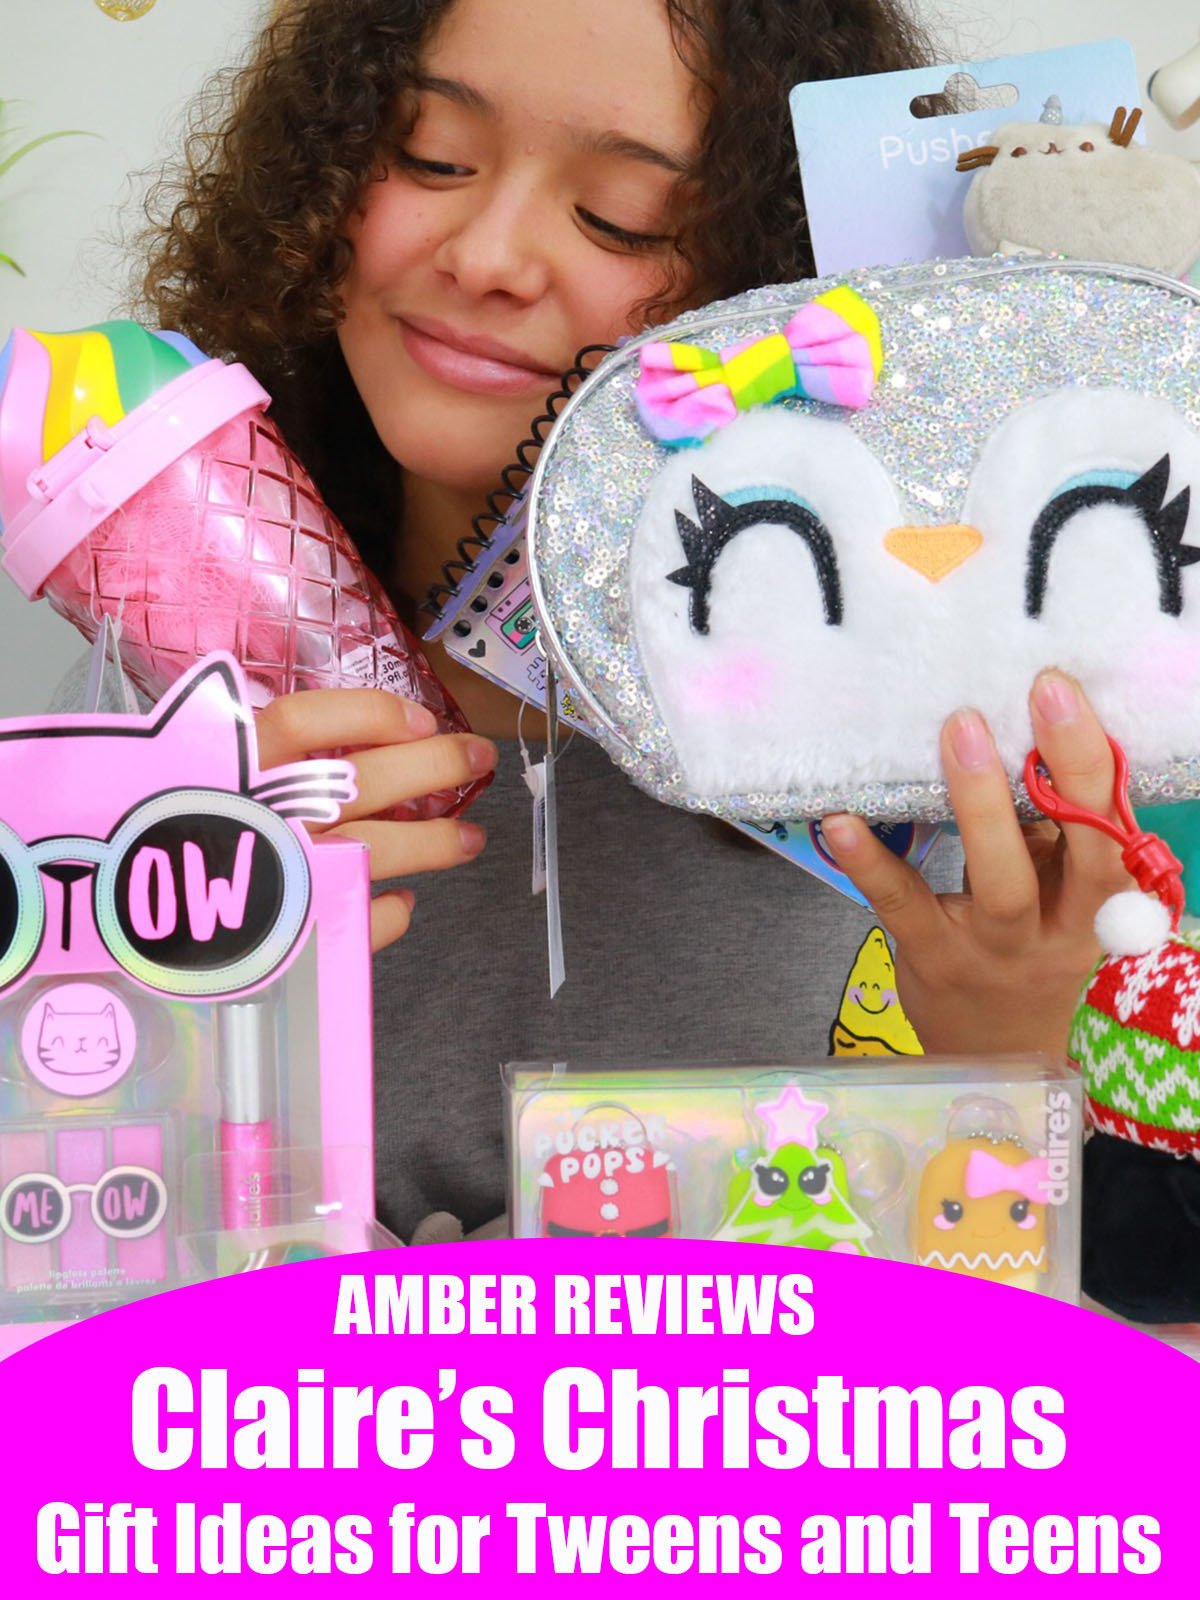 Amber Reviews Claire's Christmas Gift Ideas for Tweens and Teens